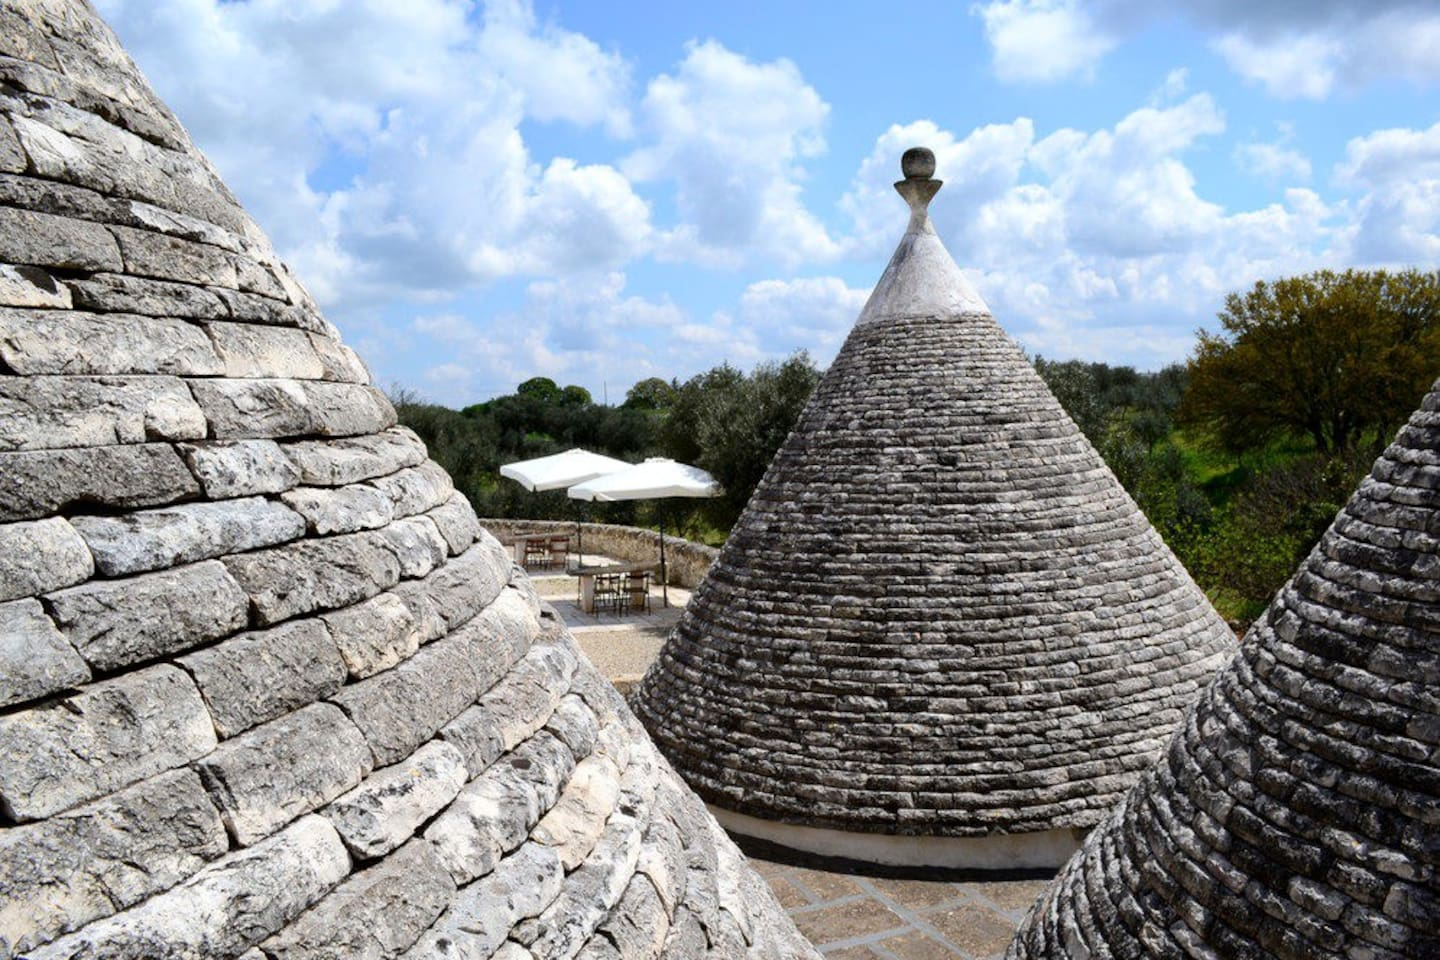 Wonderful views from the top of the trulli!